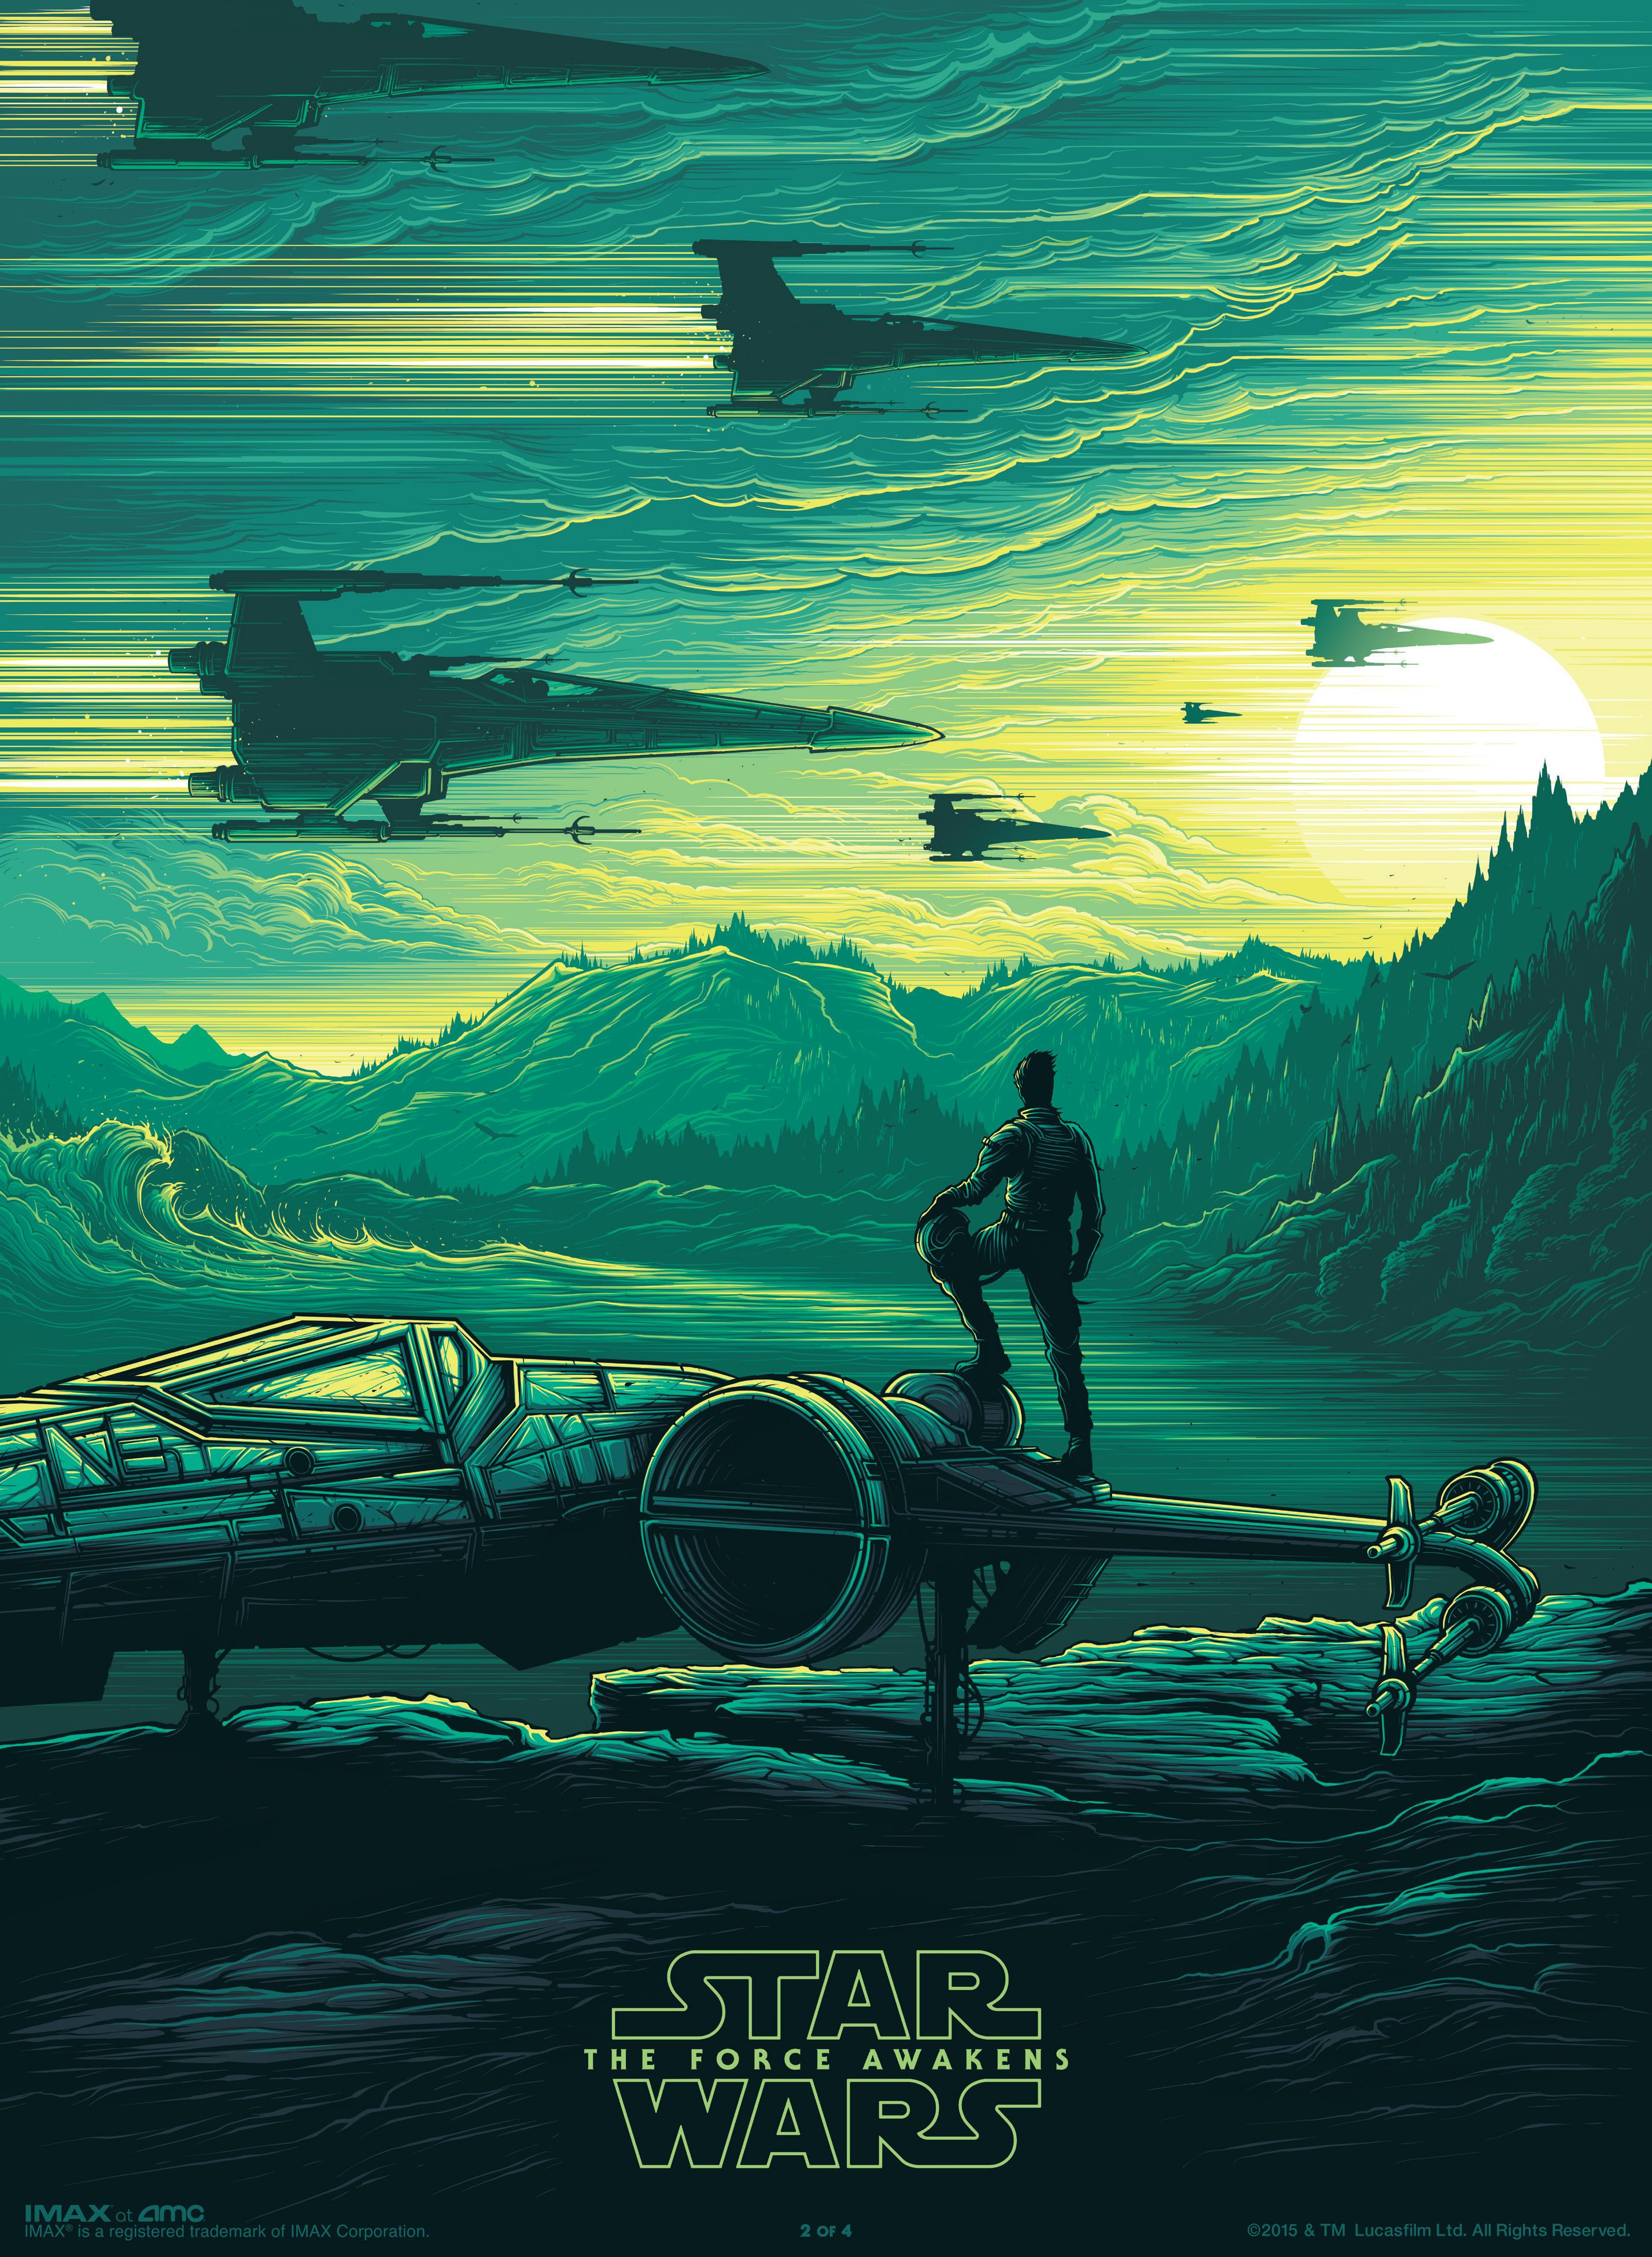 Star Wars The Force Awakens AMC Theaters Poster